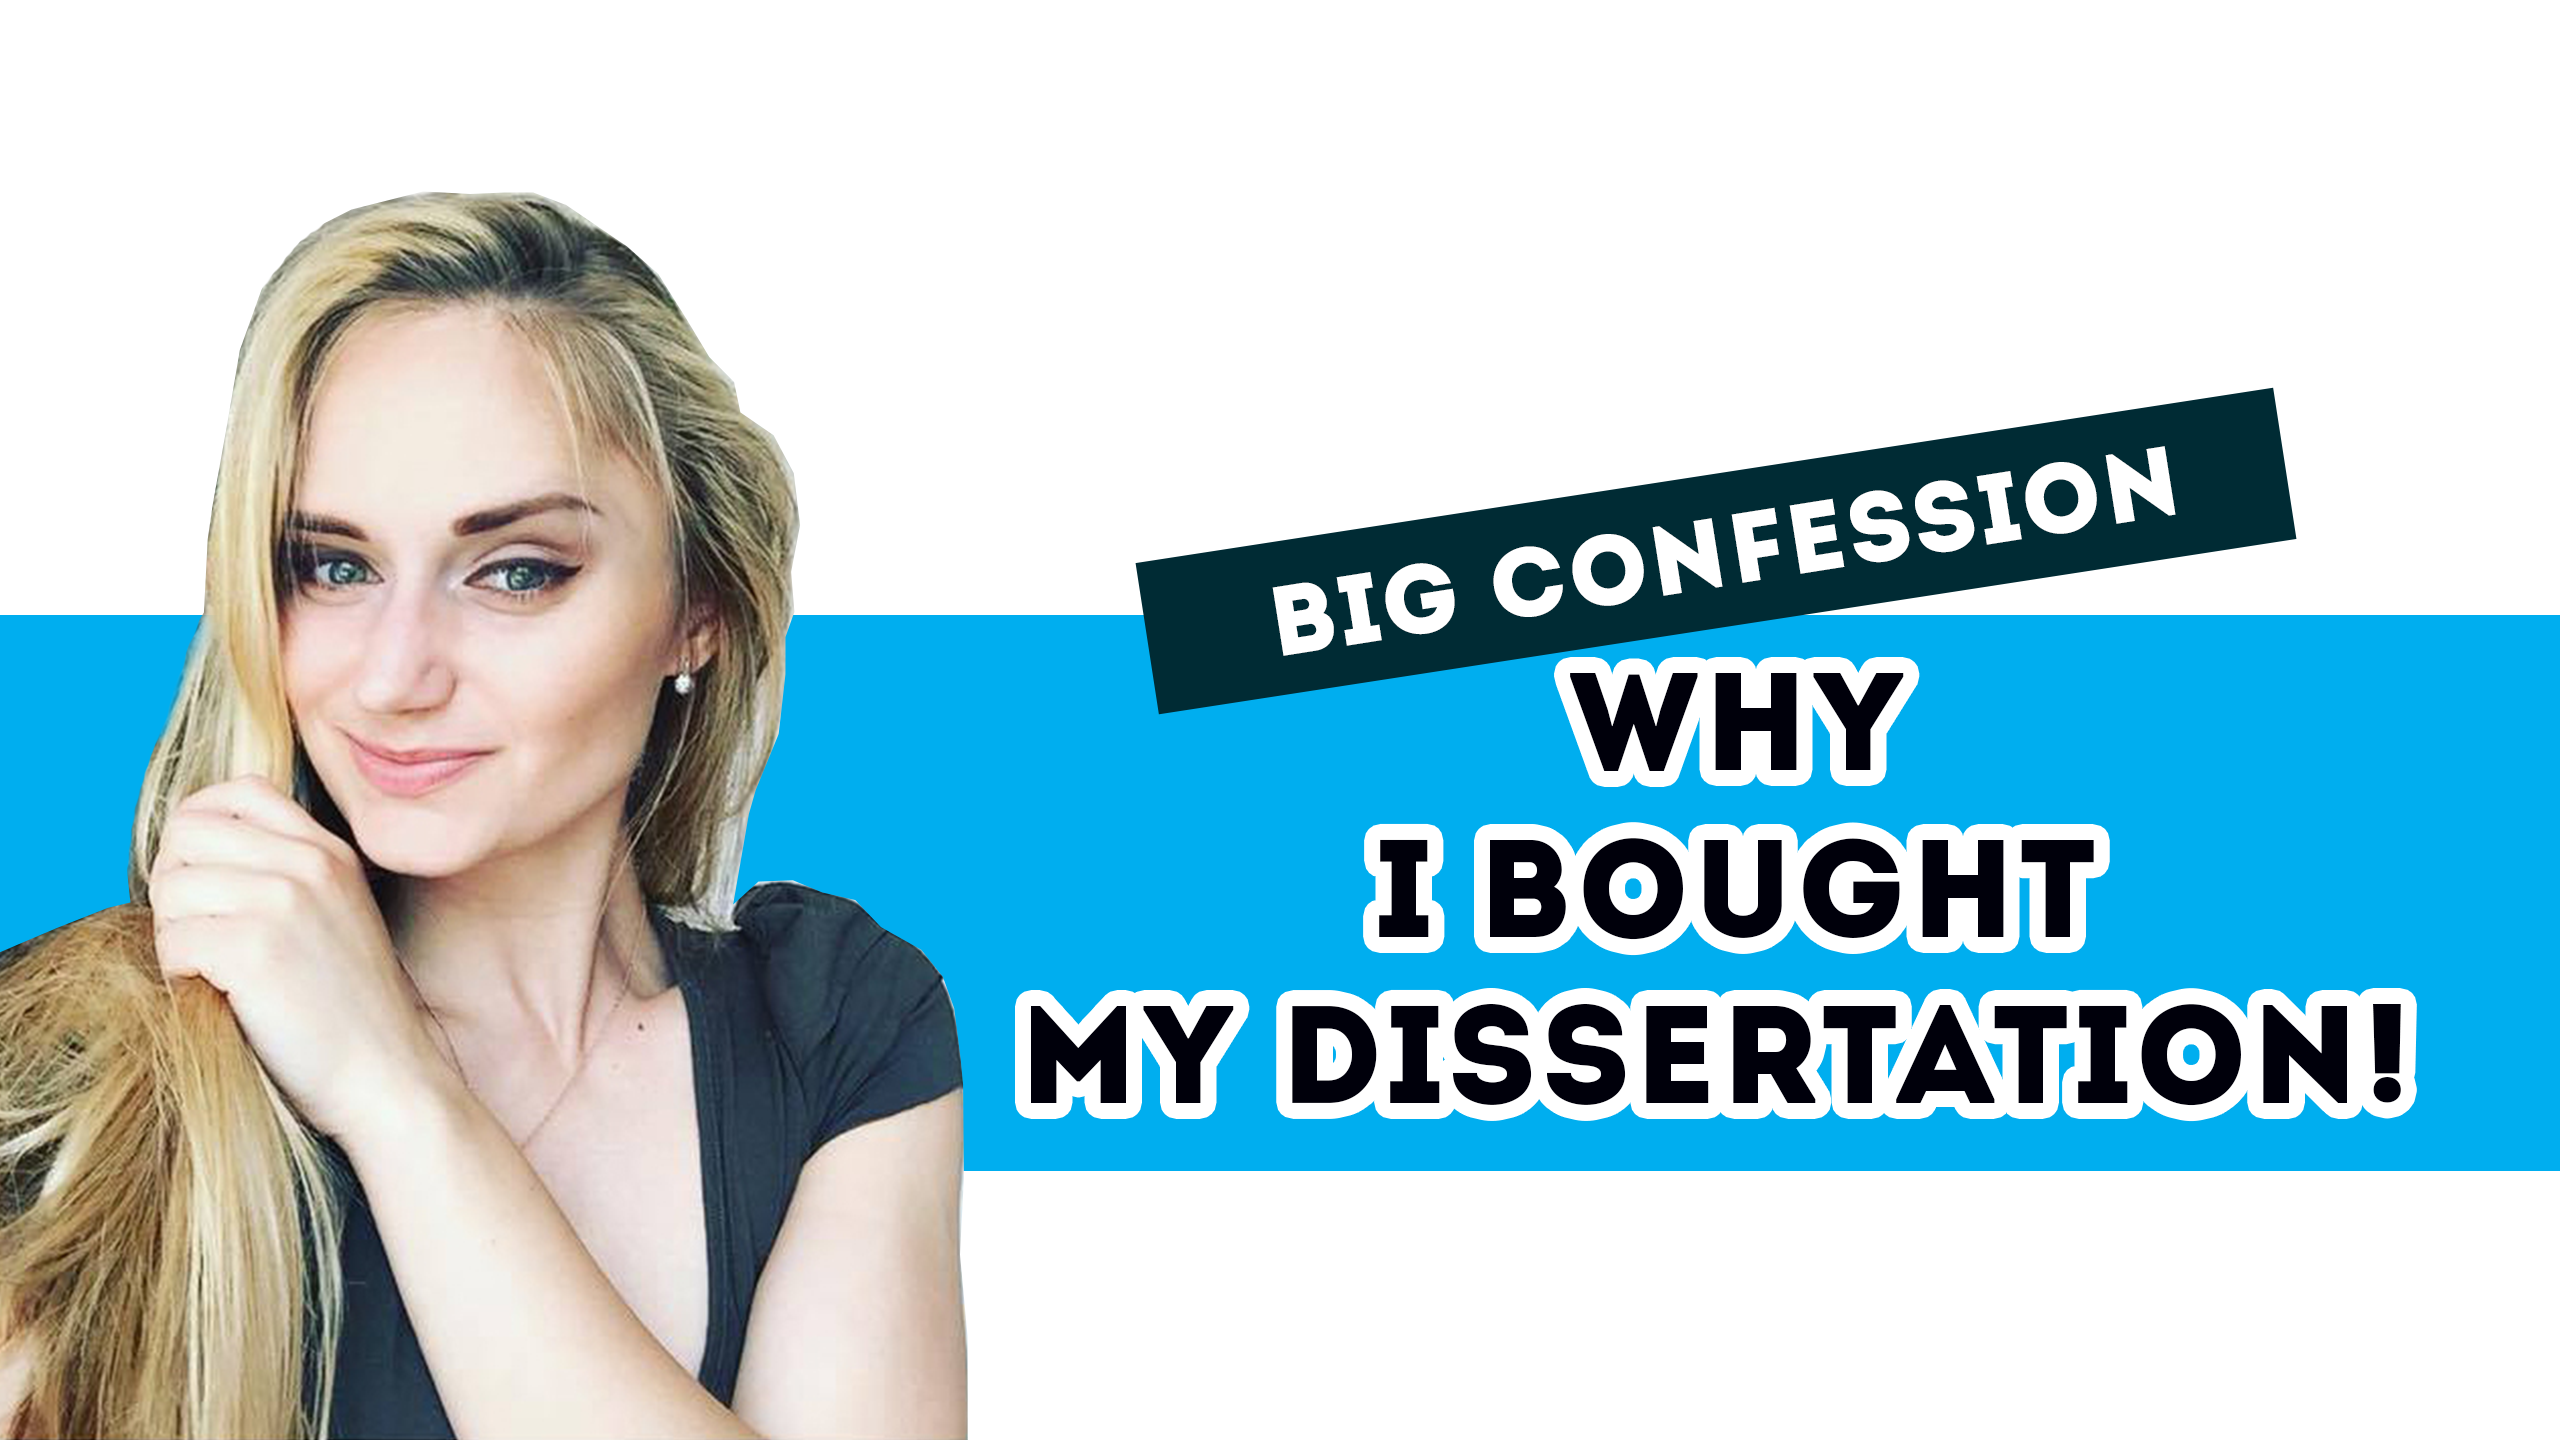 Want to buy a dissertation? Here is why this is more than okay!